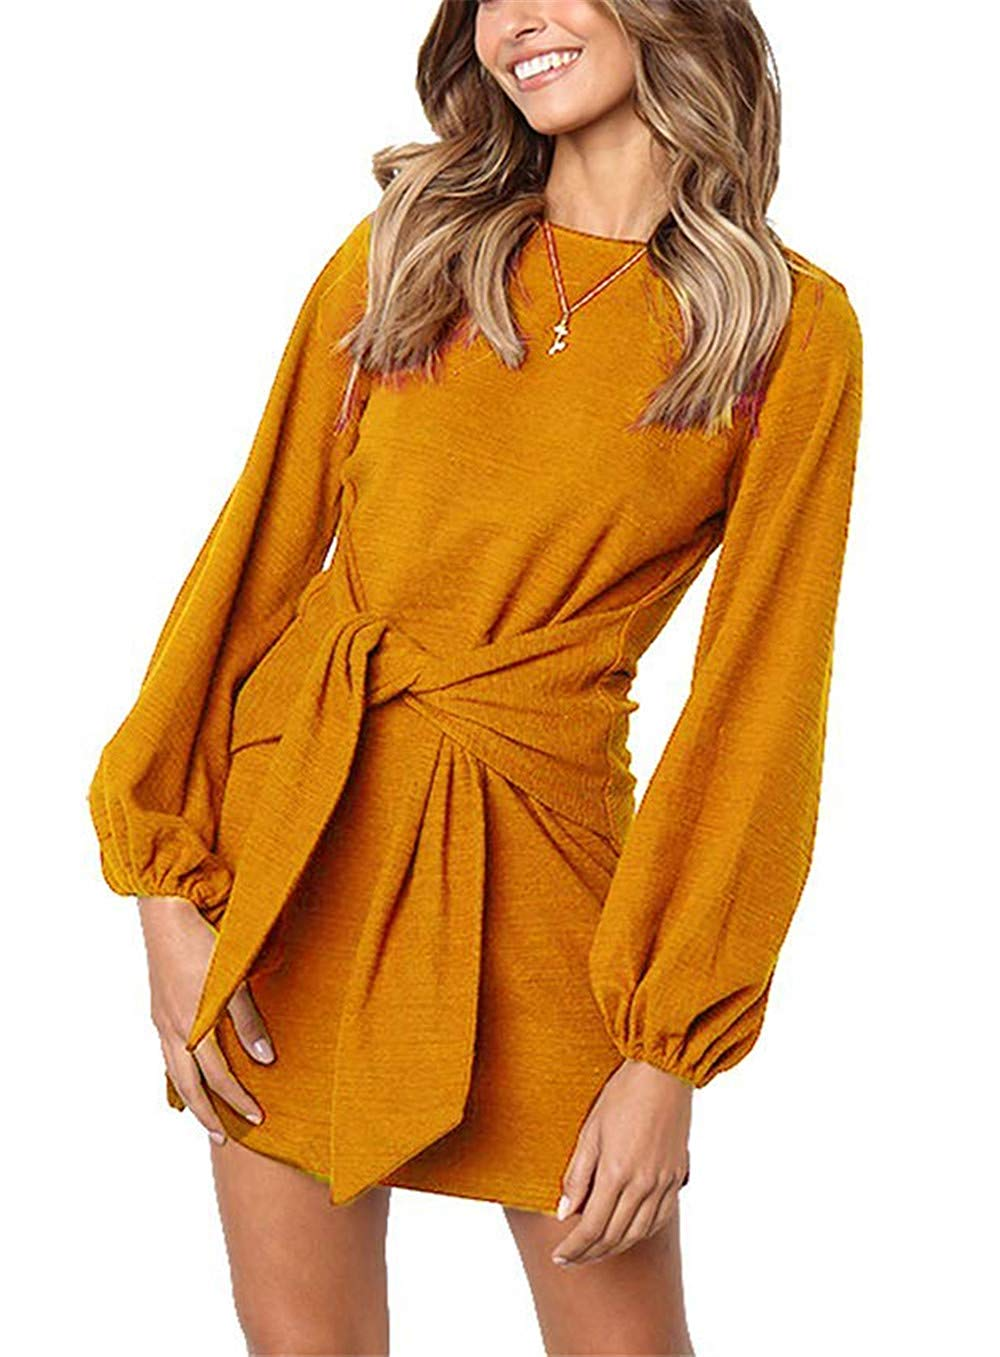 DAILYHAUTE Women's dress MUSTARD / S Haute Edition Women's Long Sleeve Tie Waist Casusal Dress